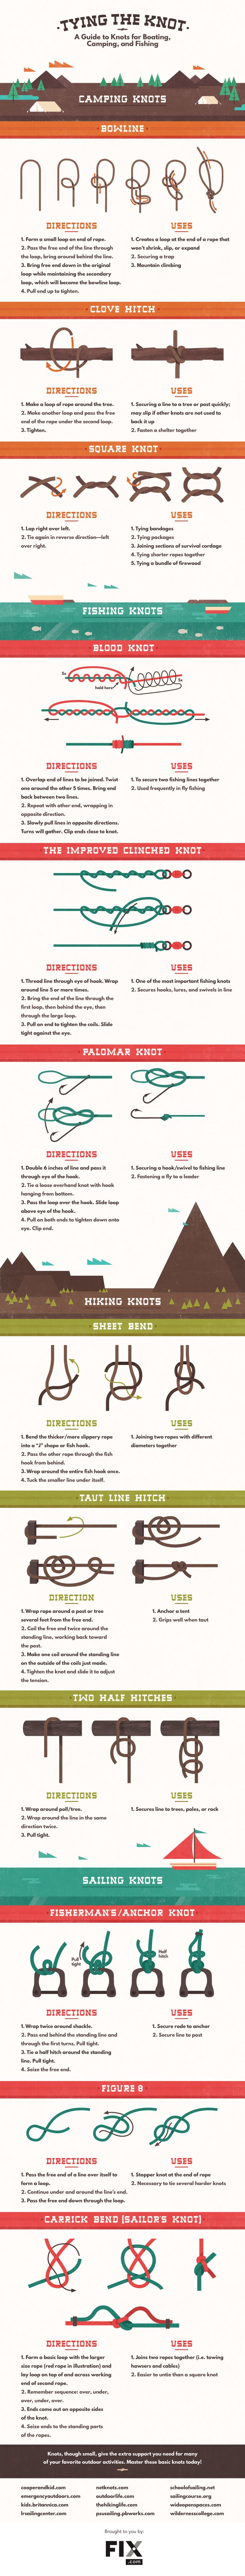 How to tie a knot on a boating, camping or fishing trip.